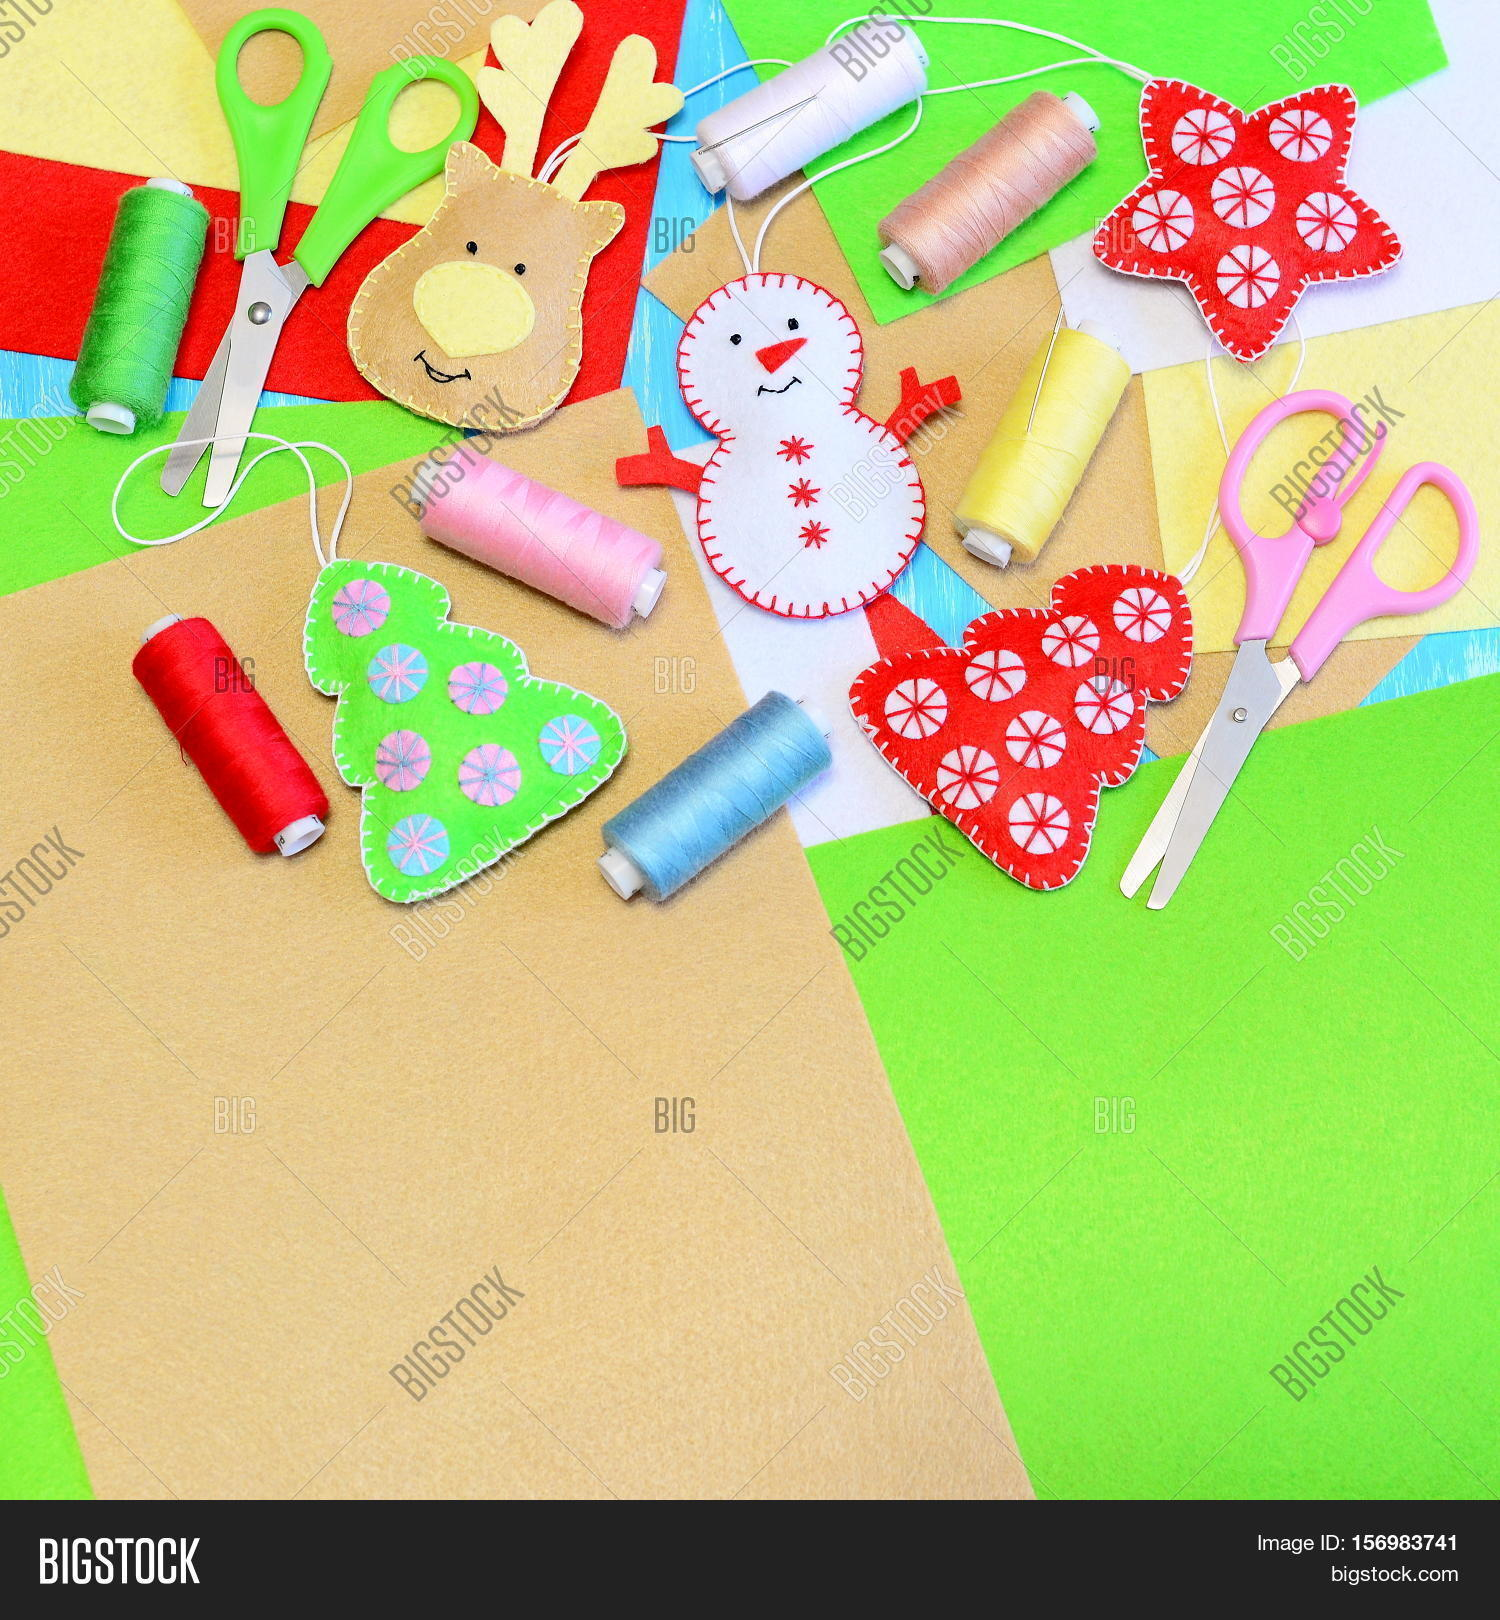 Colorful Christmas Background For Kids.Christmas Tree Image Photo Free Trial Bigstock